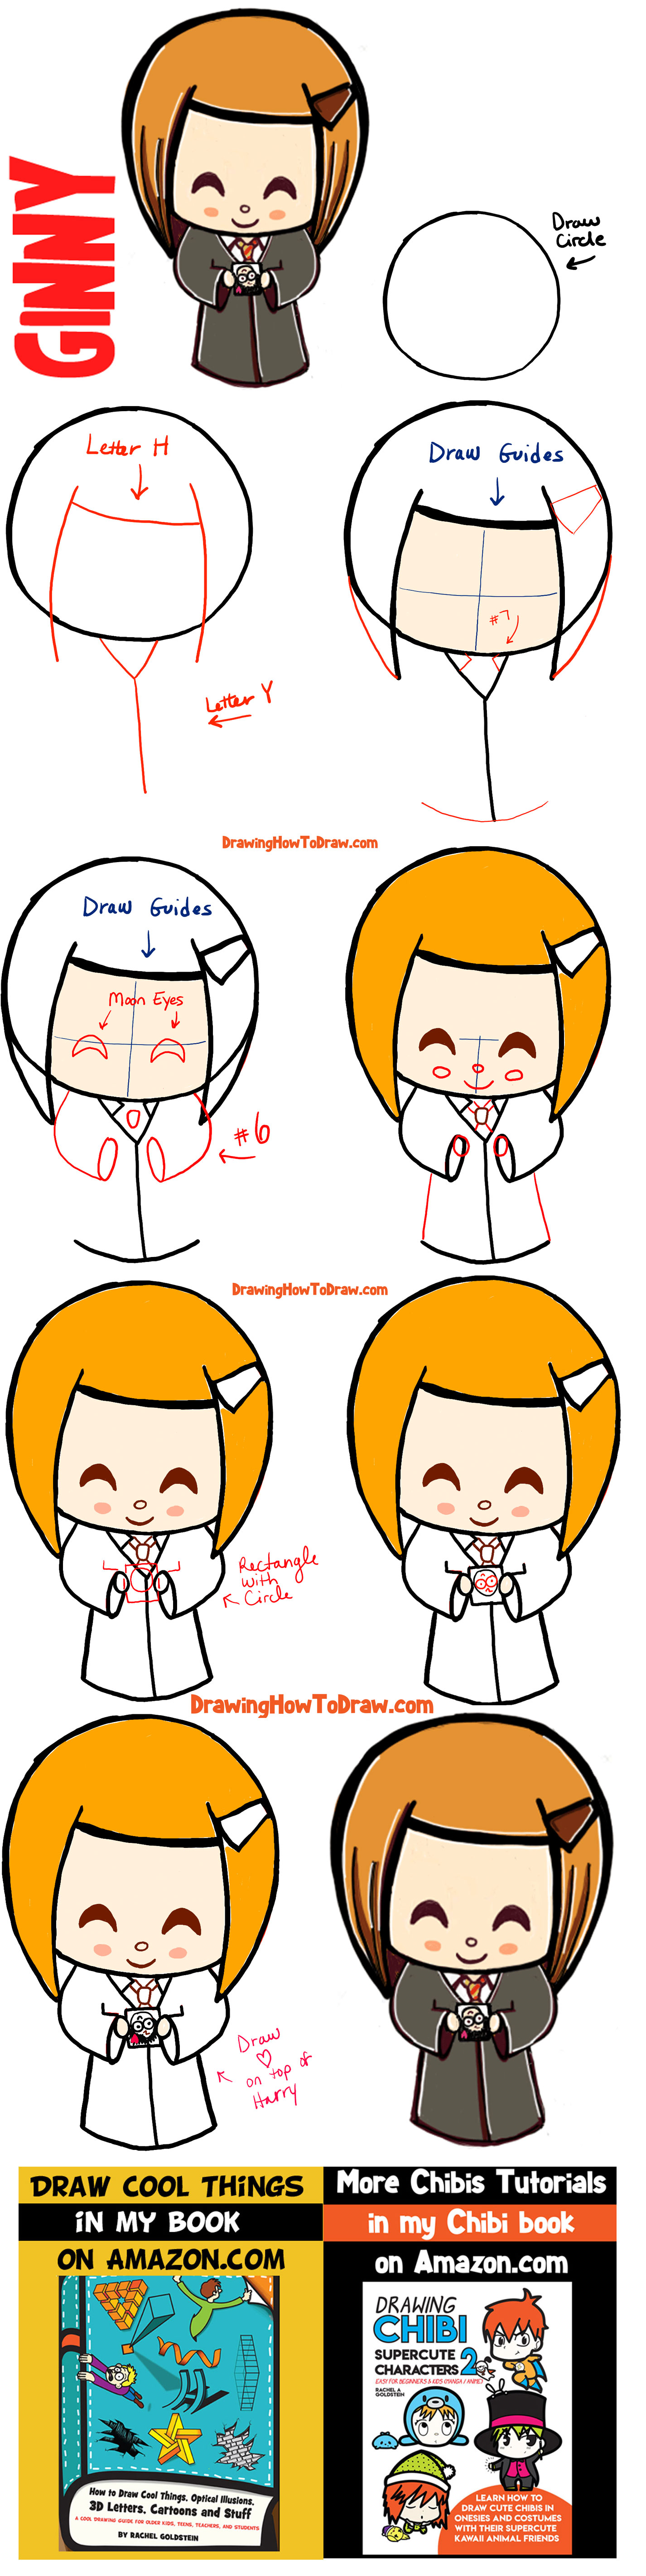 How to Draw a Cute Chibi Ginny Weasley with Easy Step by Step Drawing Tutorial